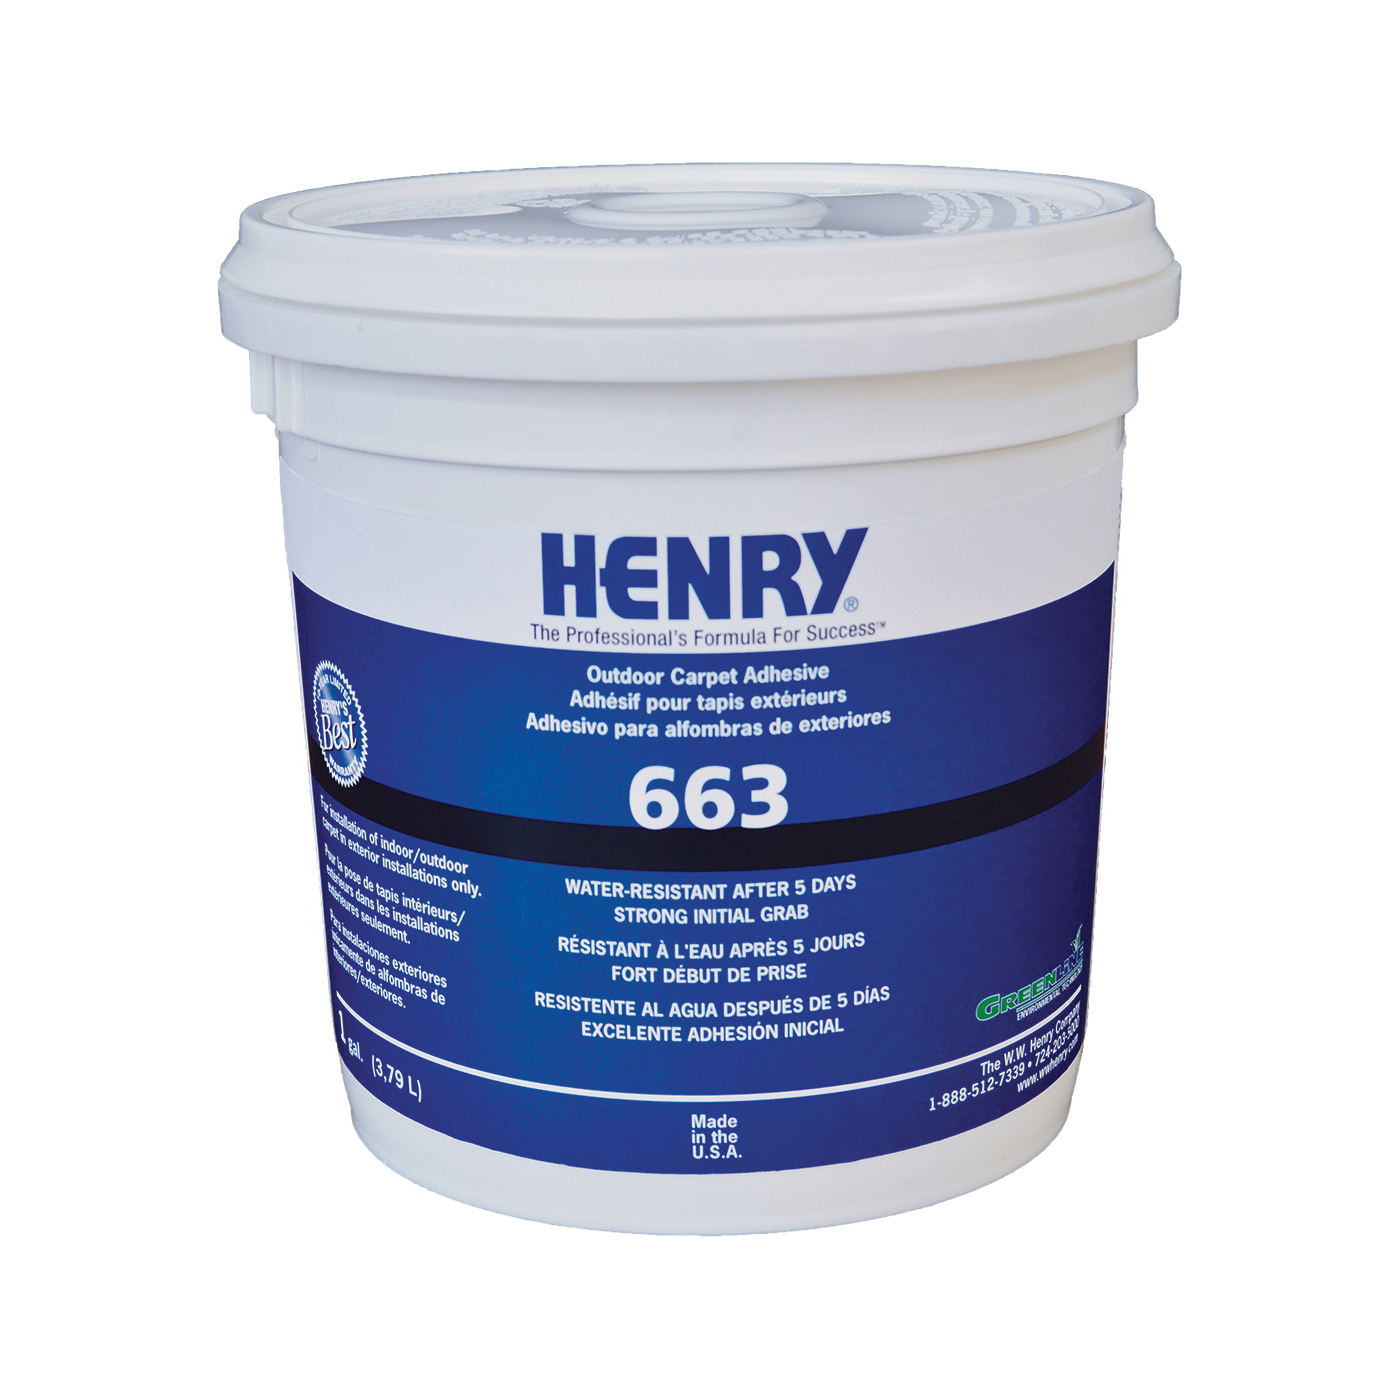 Picture of HENRY 12185 Carpet Adhesive, Beige, 1 gal Package, Container